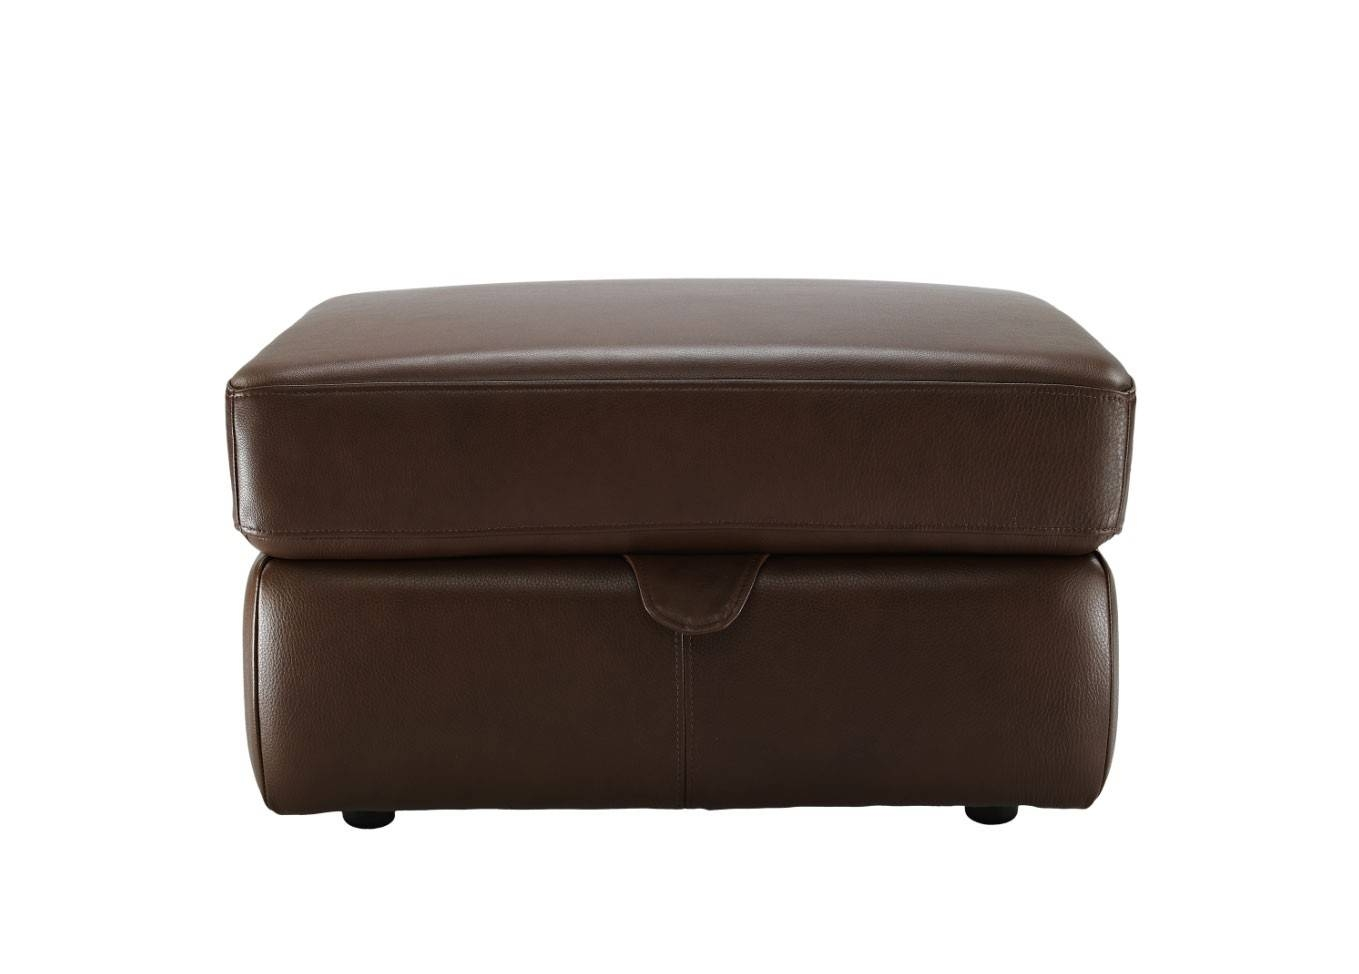 G Plan Washington Leather Storage Footstool | Tr Hayes - Furniture intended for Leather Footstools (Image 11 of 30)